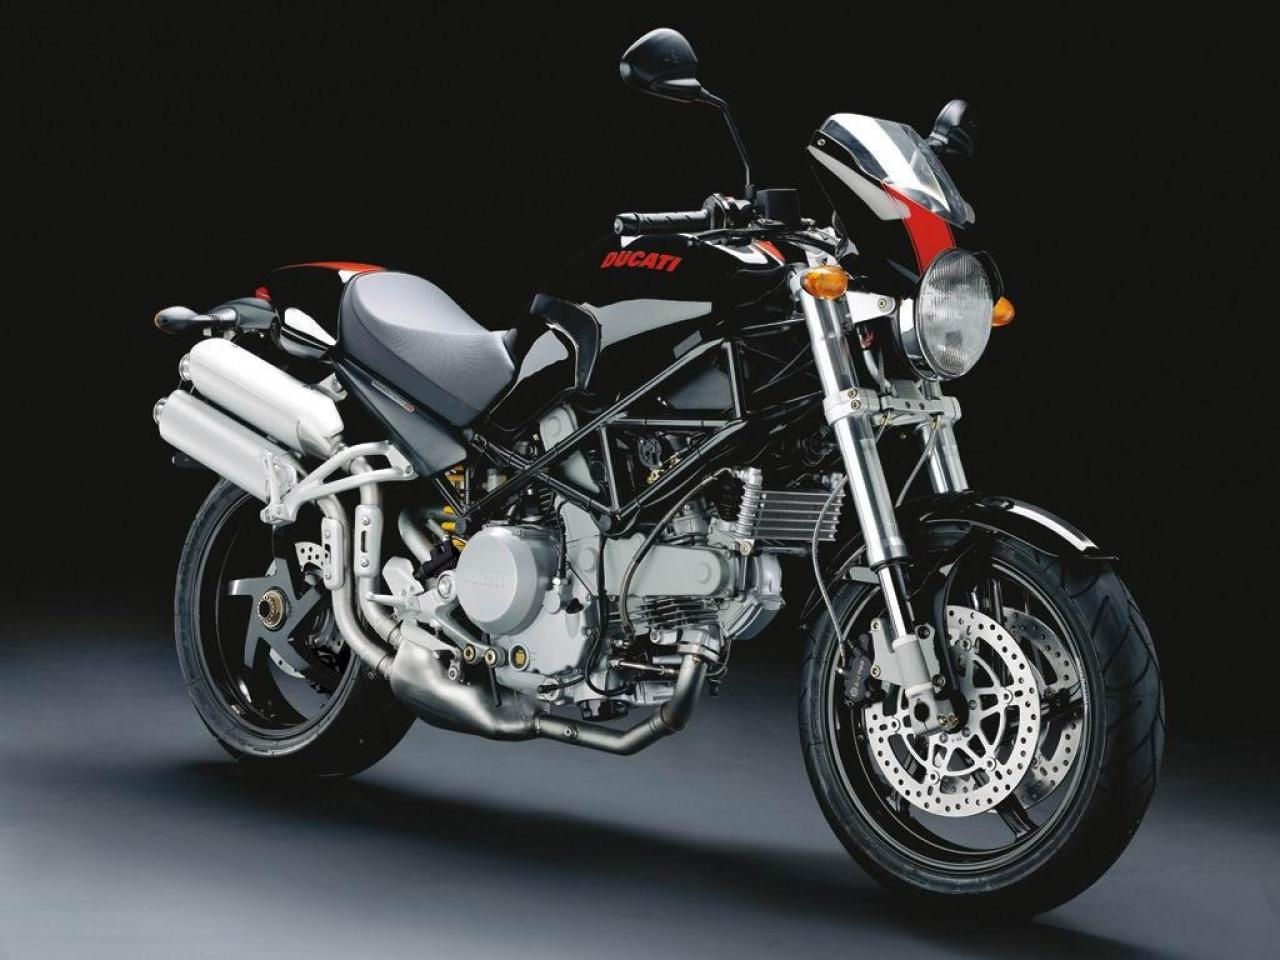 2008 Ducati Monster S2R 1000 Photos, Informations